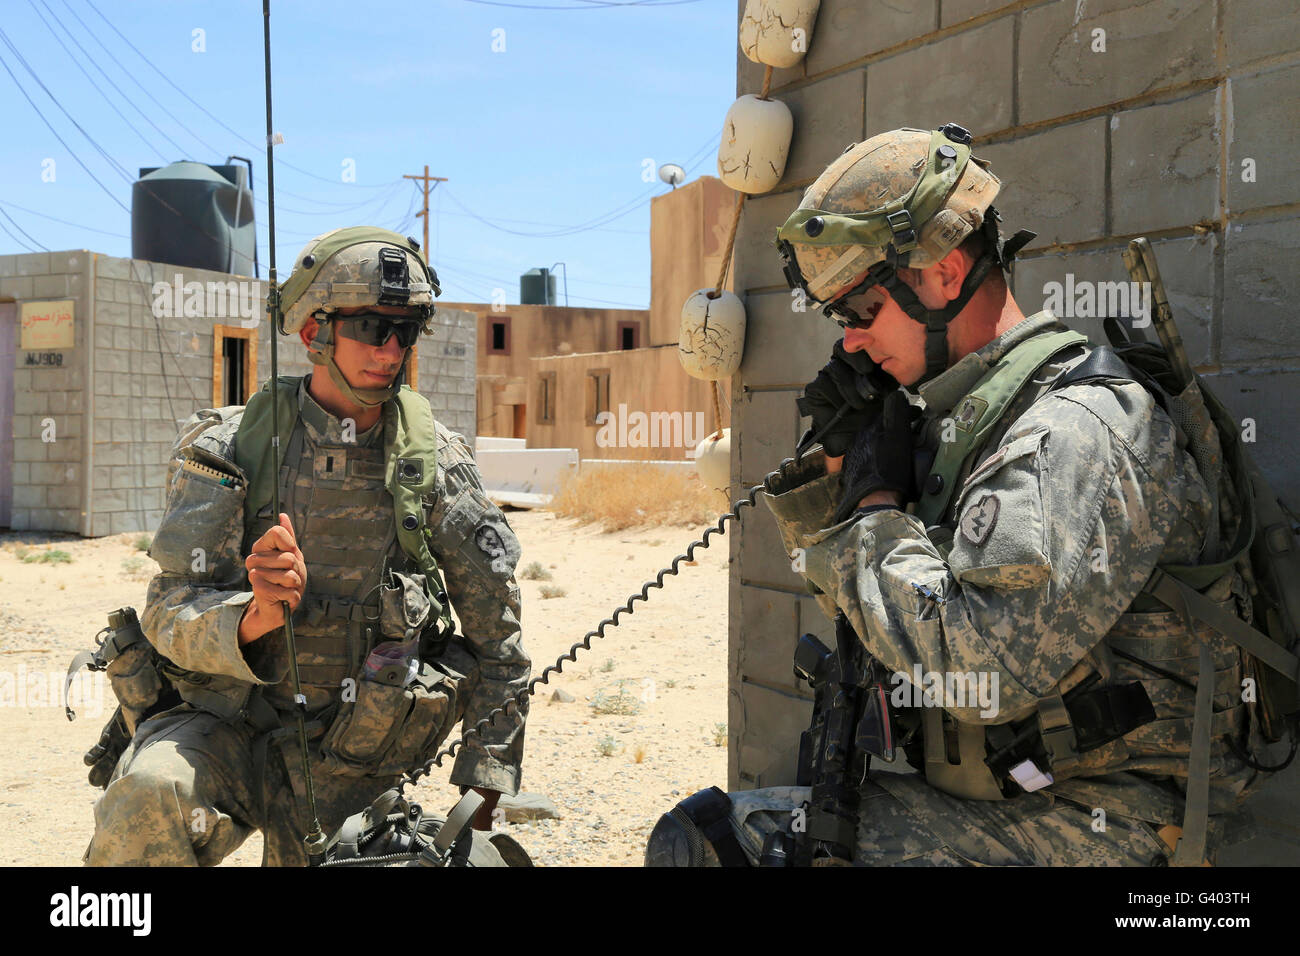 U.S. Army Soldiers use a radio to communicate. - Stock Image